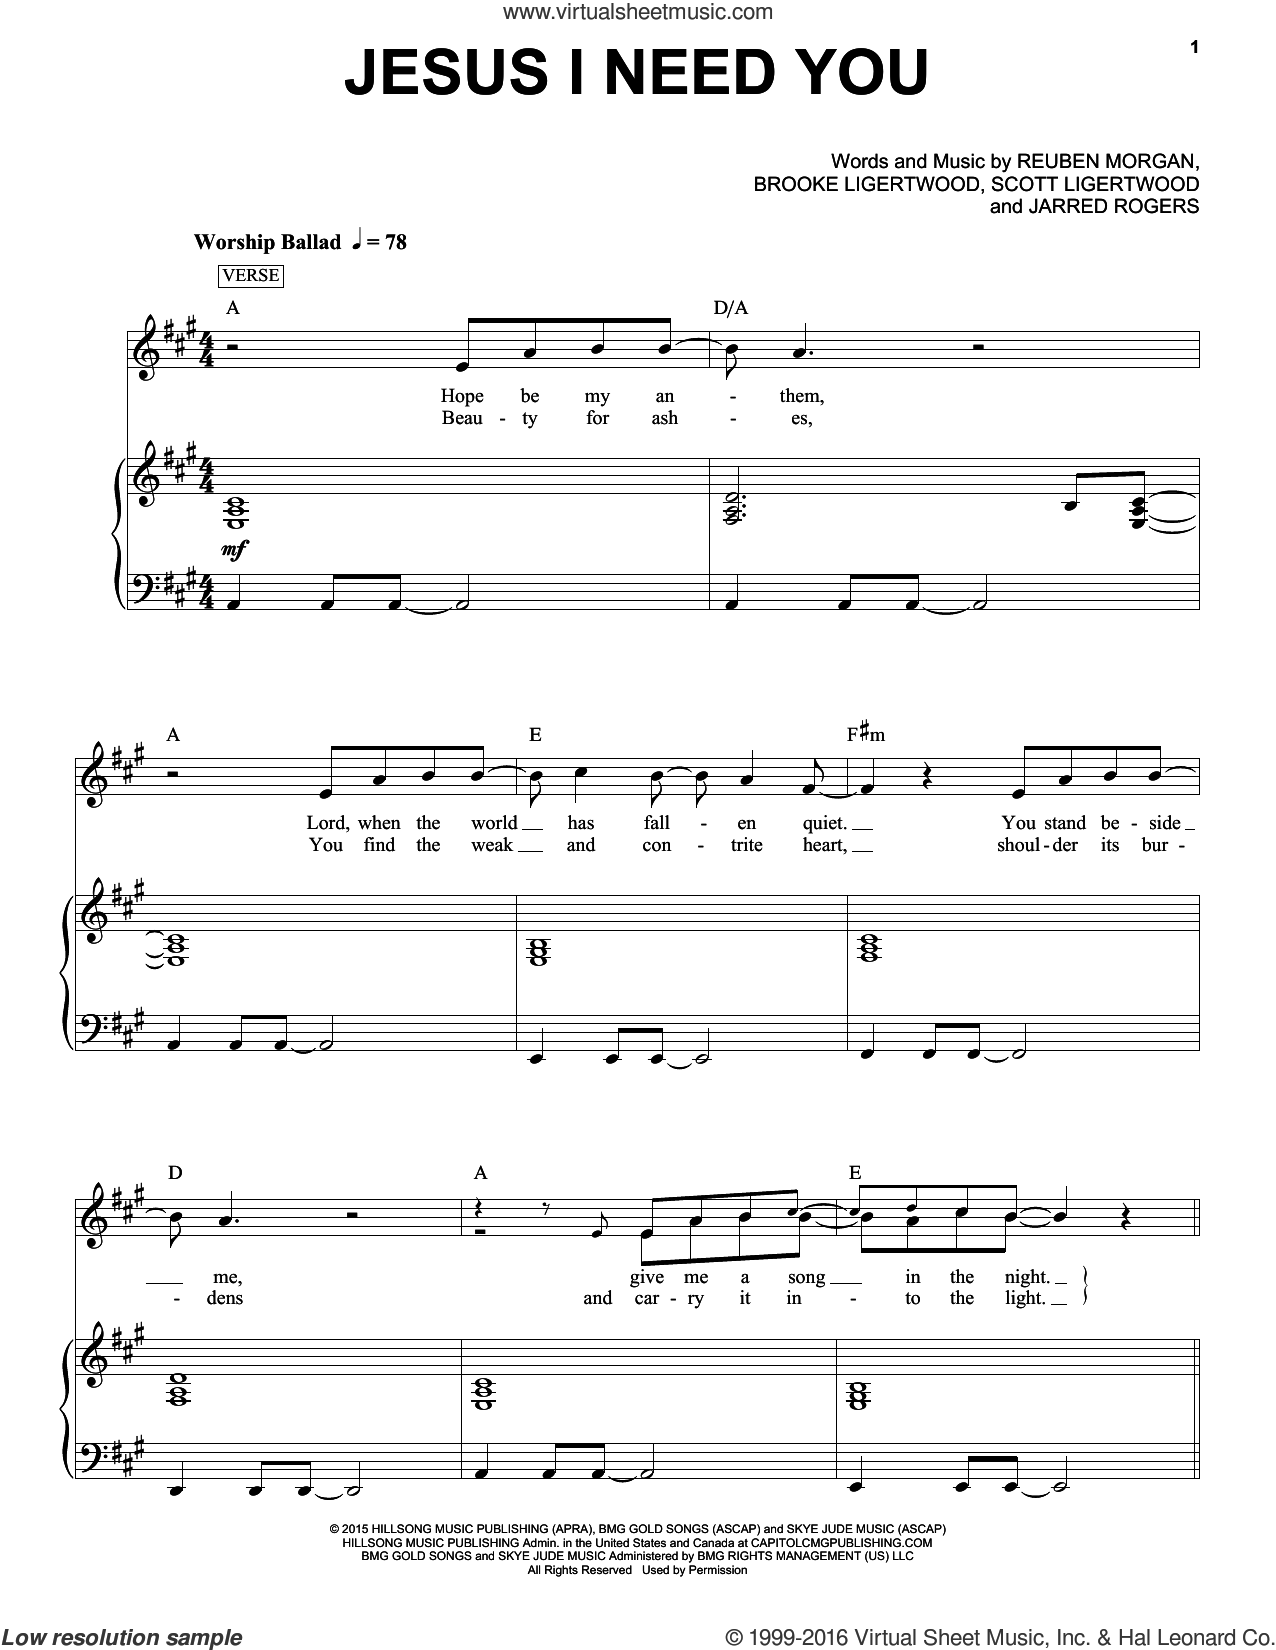 Worship - Jesus I Need You sheet music for voice and piano [PDF]